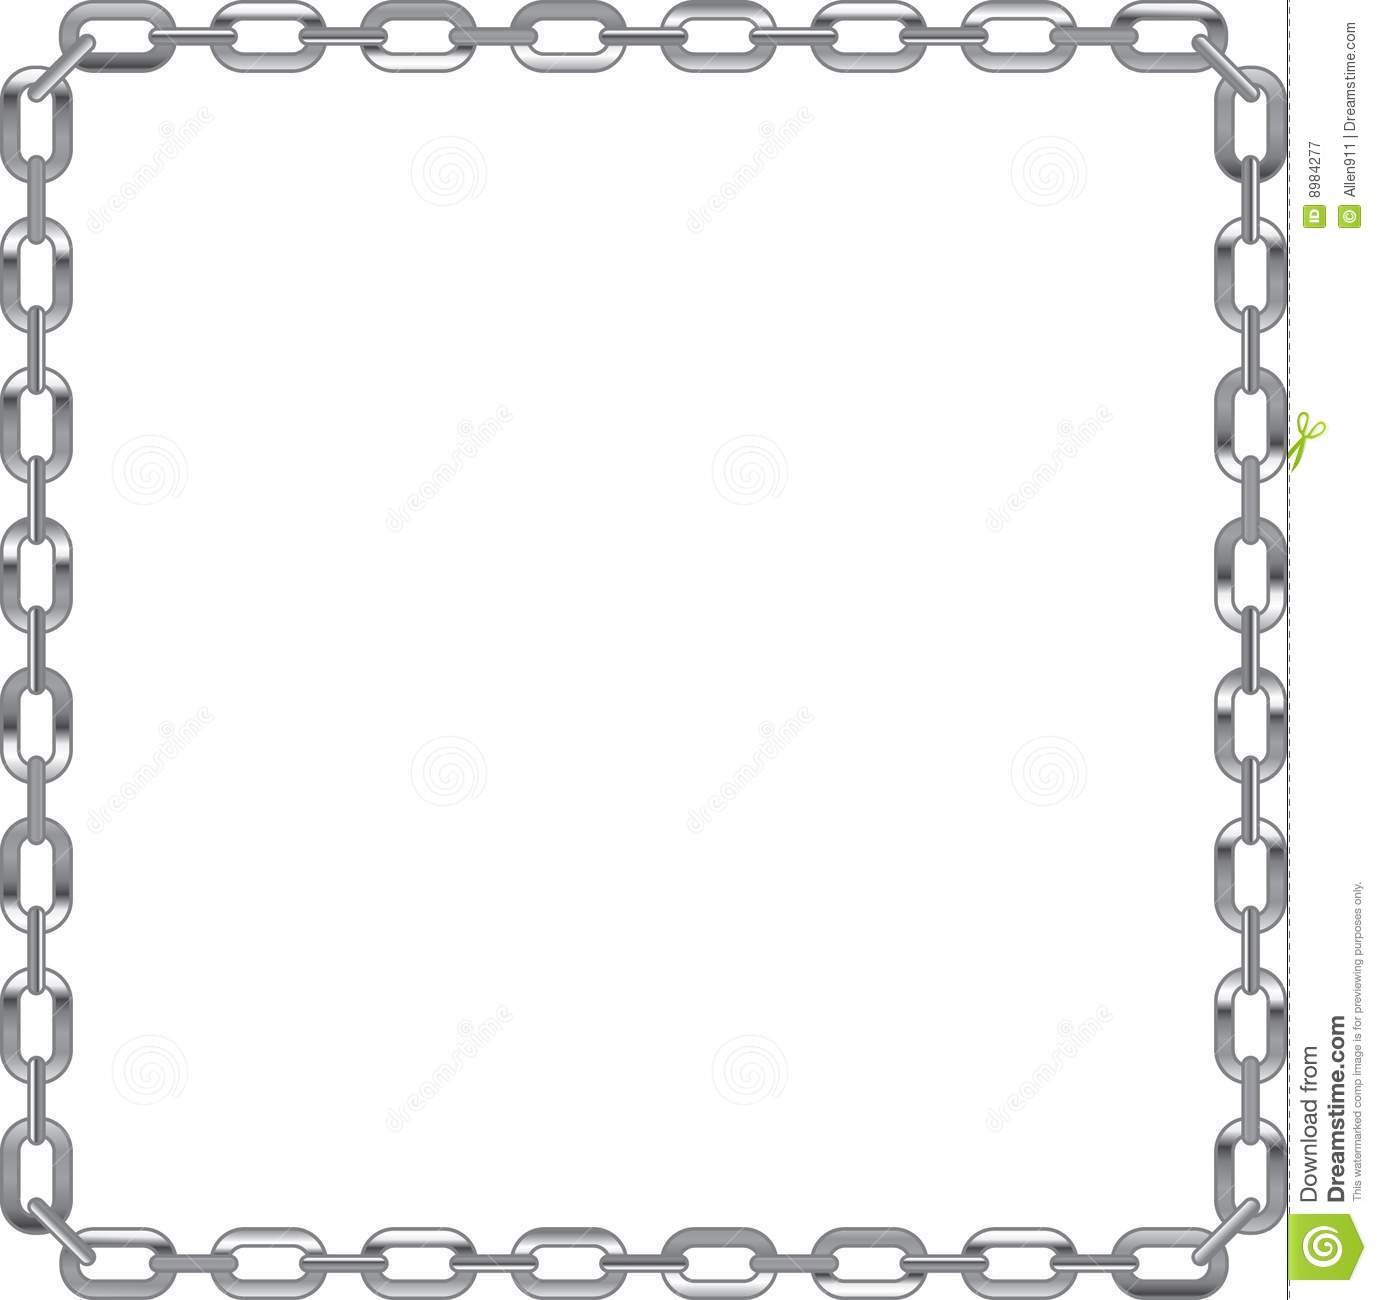 Free frame cliparts download. Chain clipart border